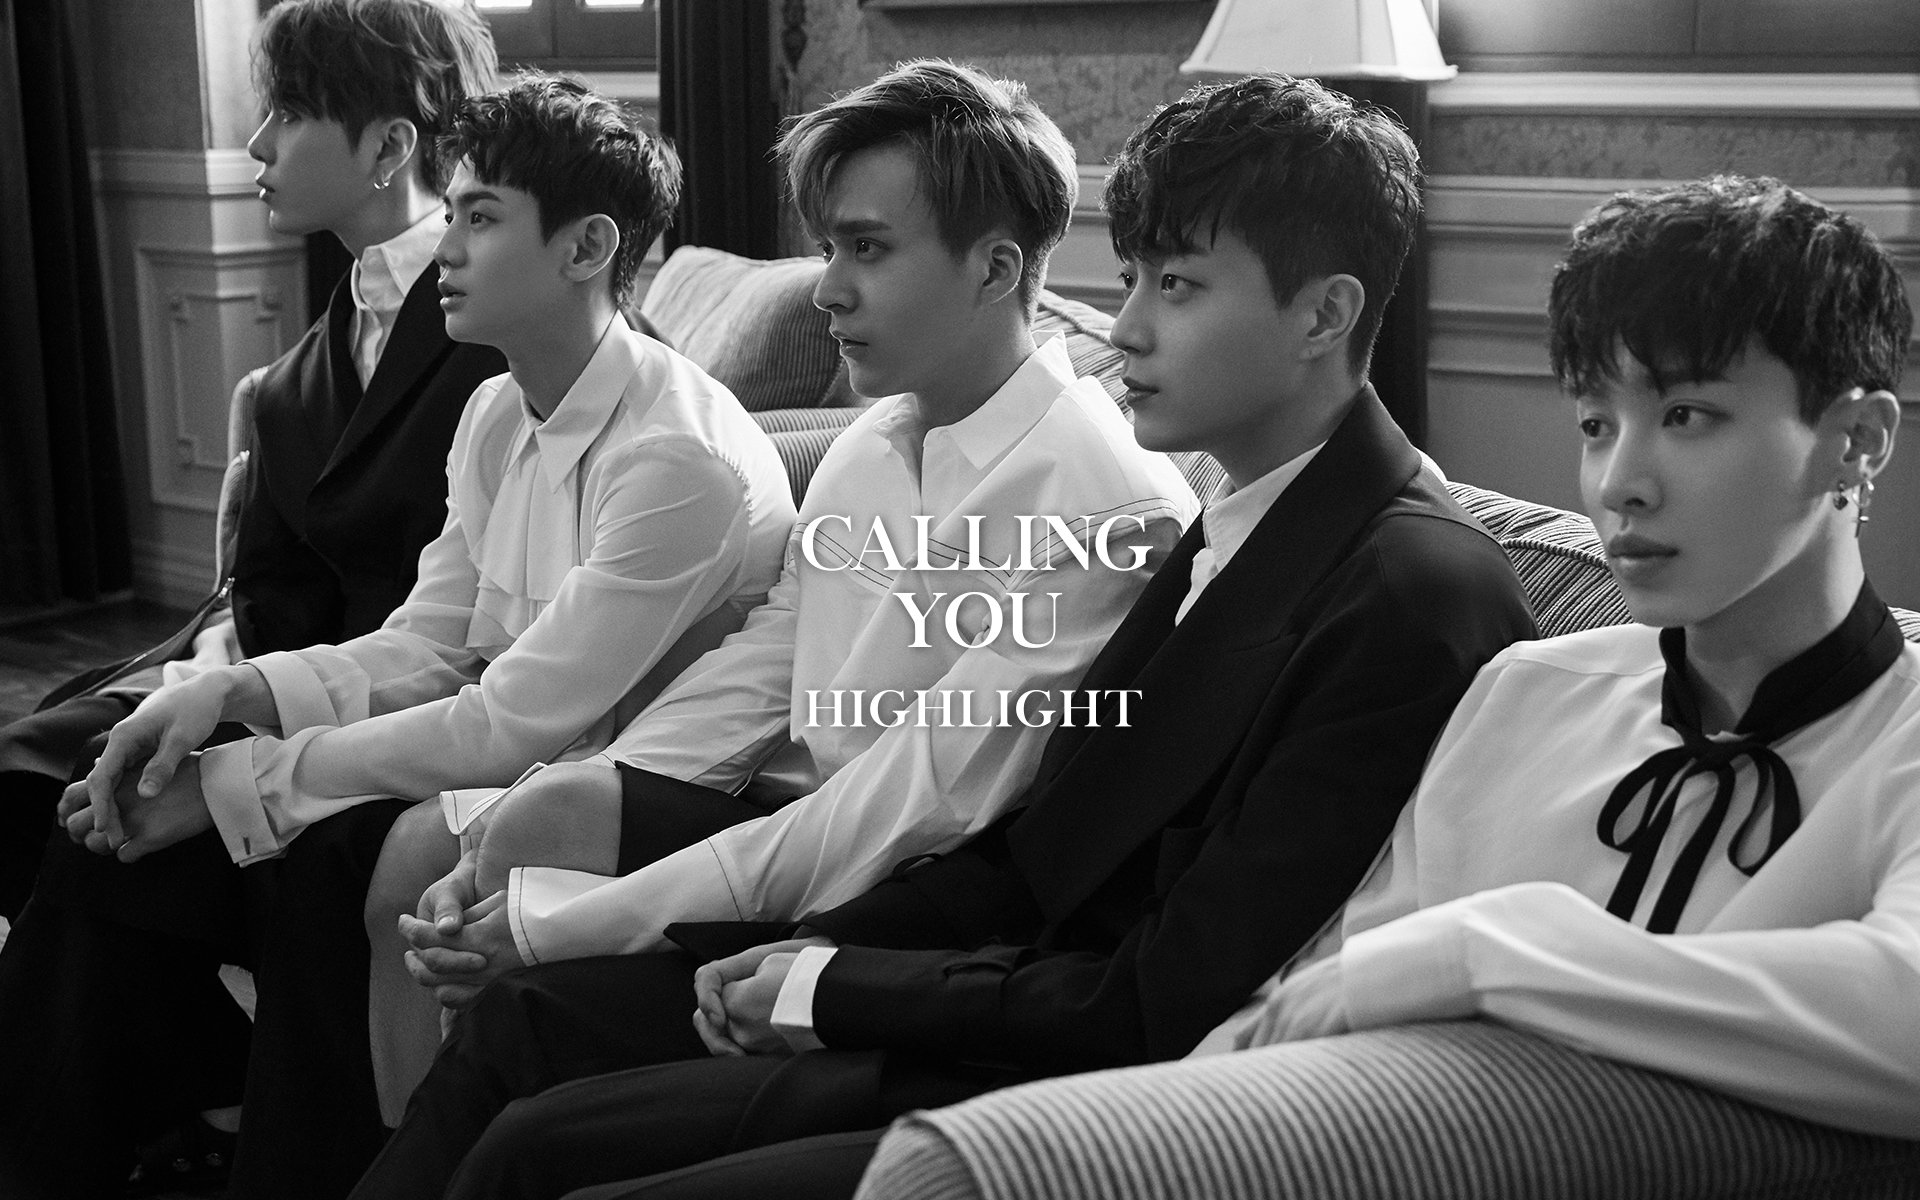 Update: Highlight Gives Fans A Look At Physical Album Cover